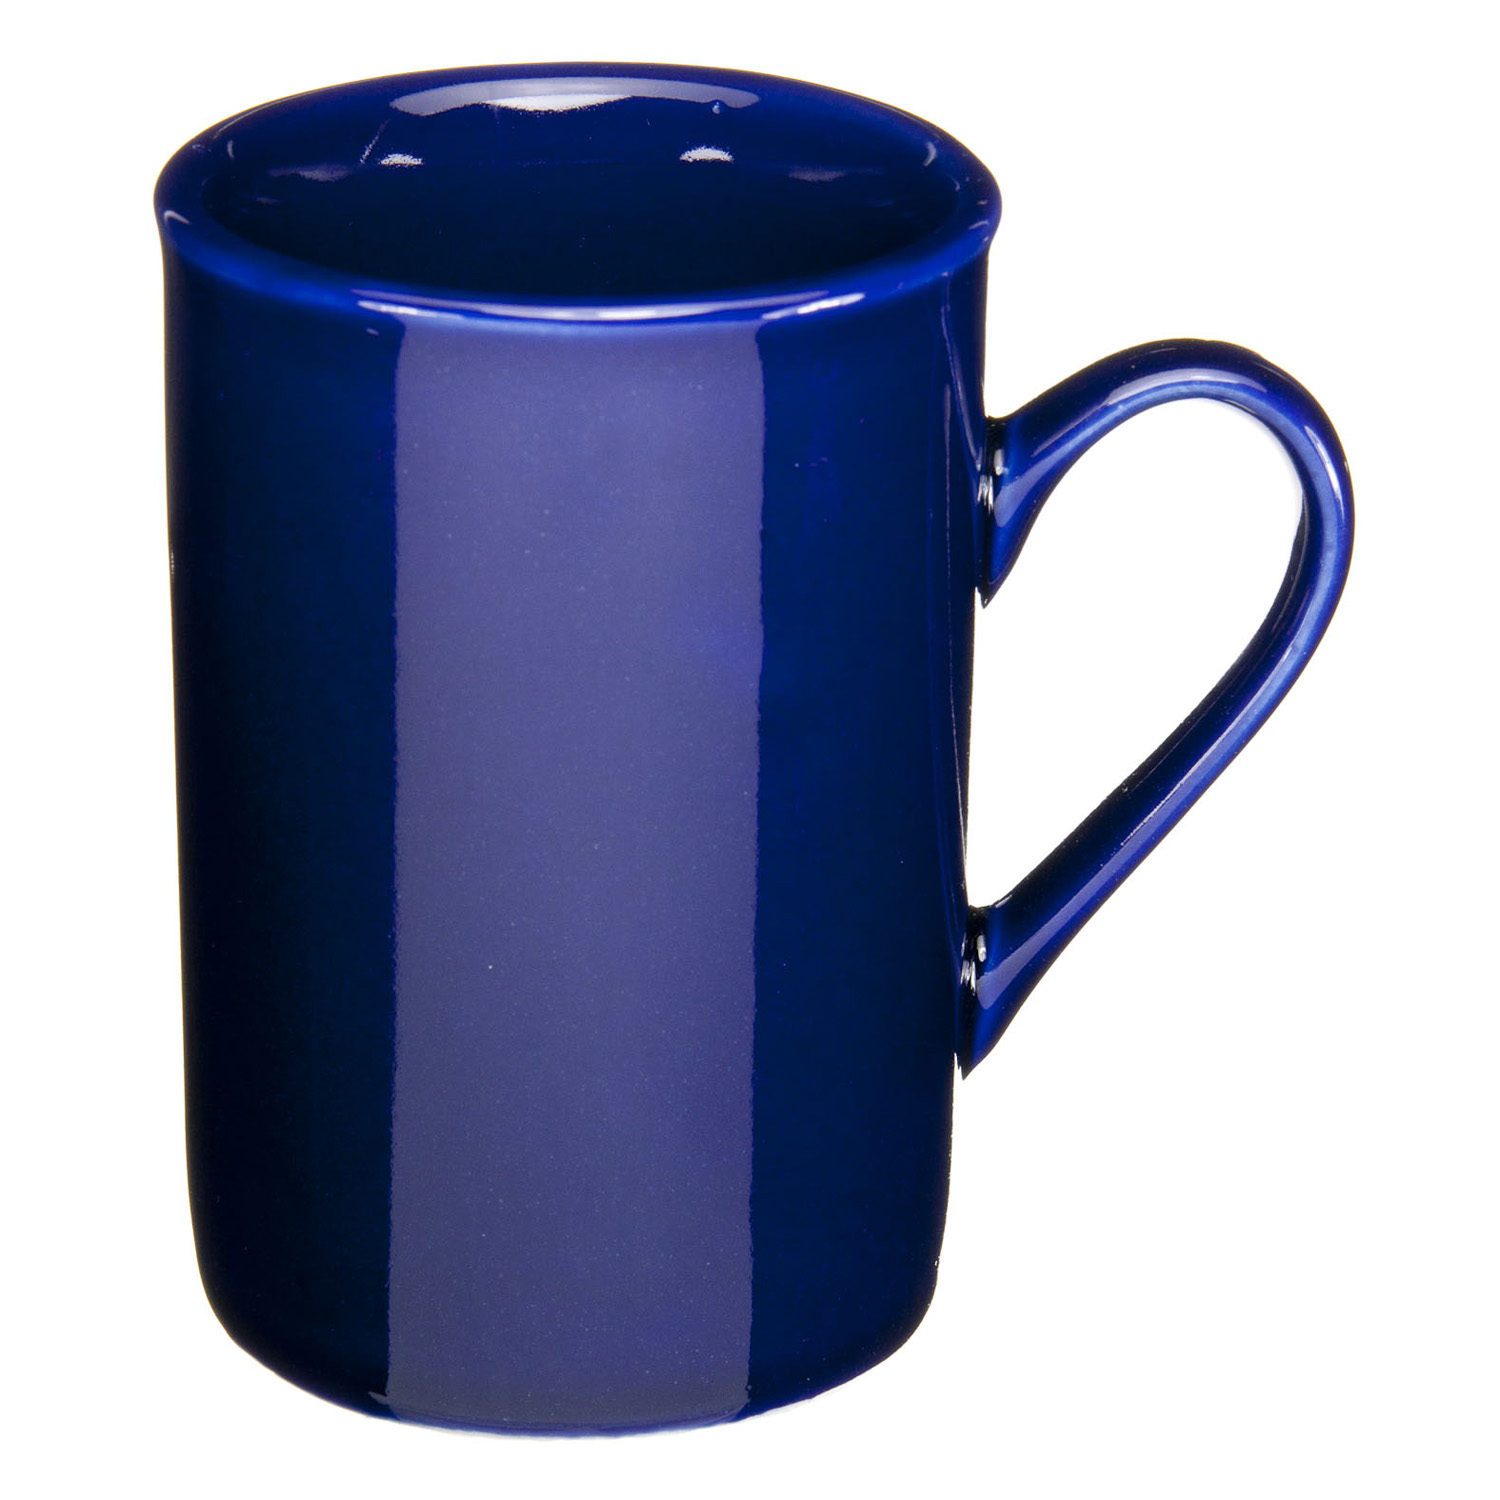 Royal Blue Bistro Mug_24CE-2601-320-prd03